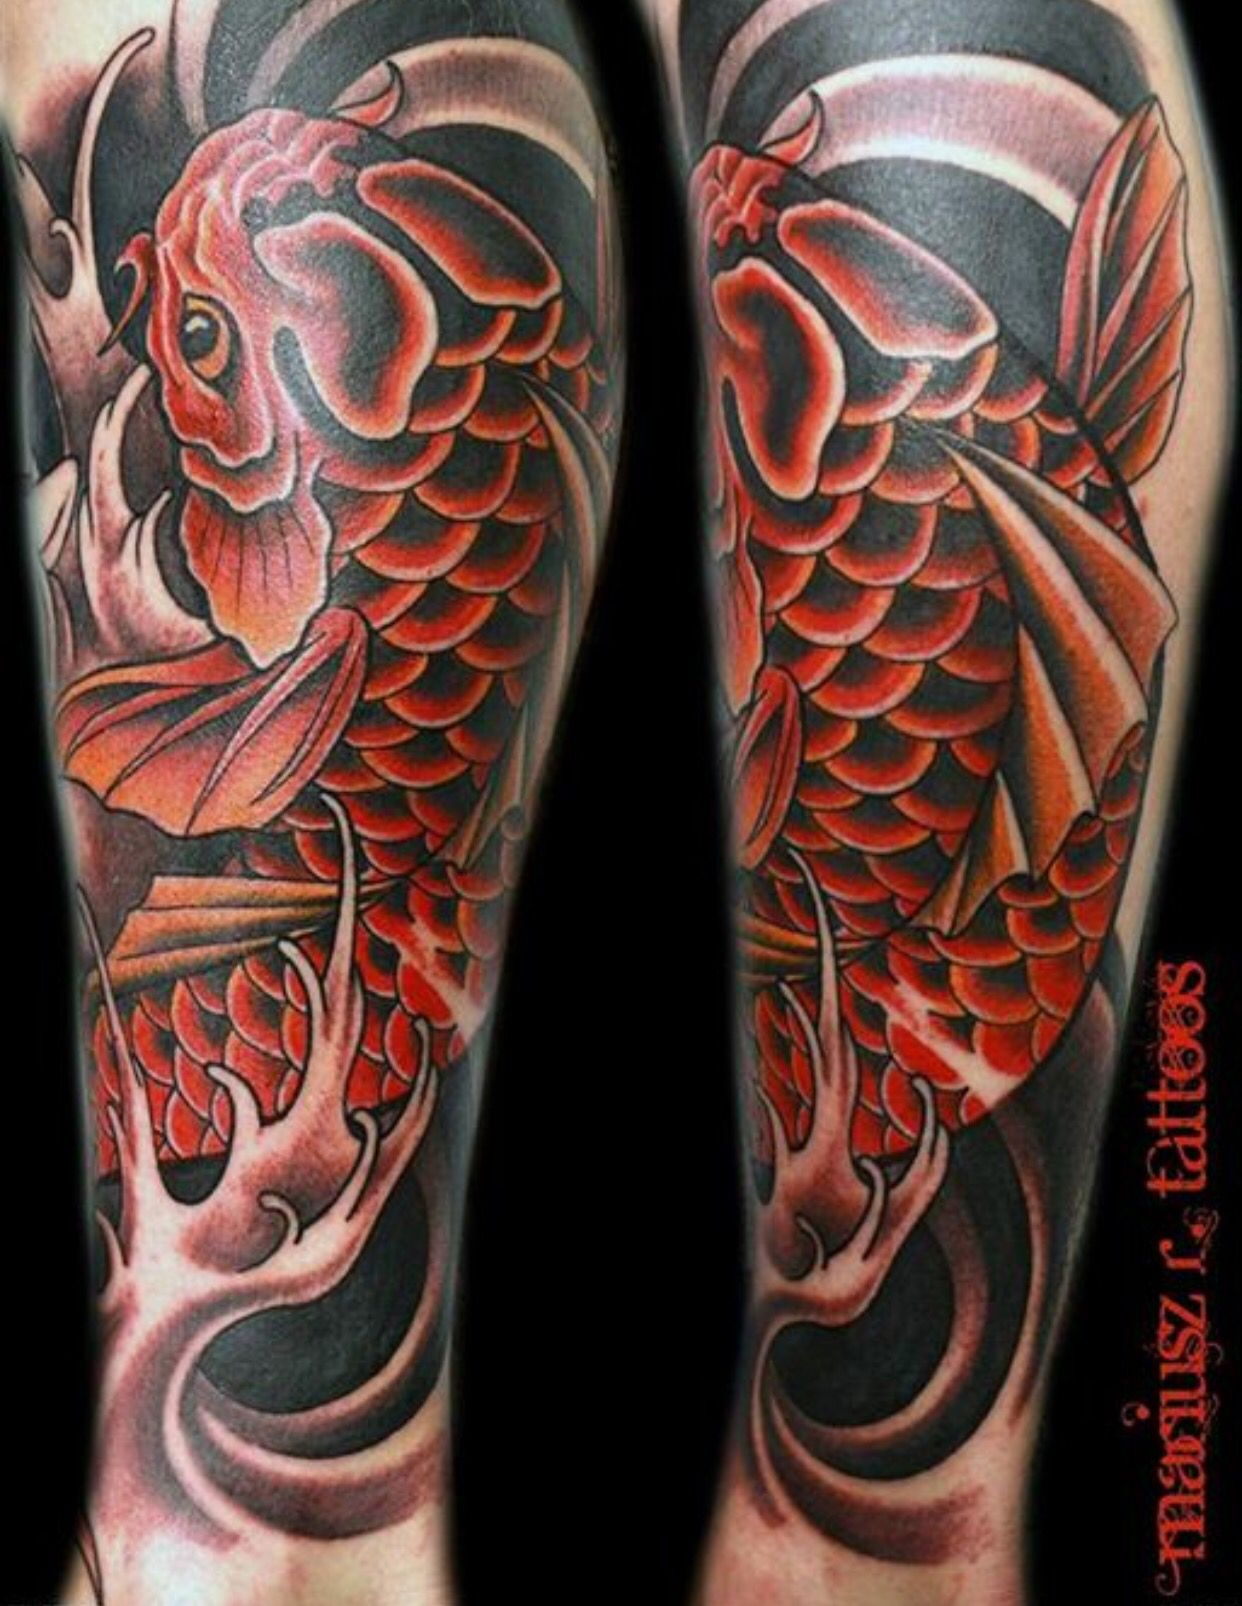 Coy fish codys cover up tattoos pinterest coy fish for Koi fish cover up